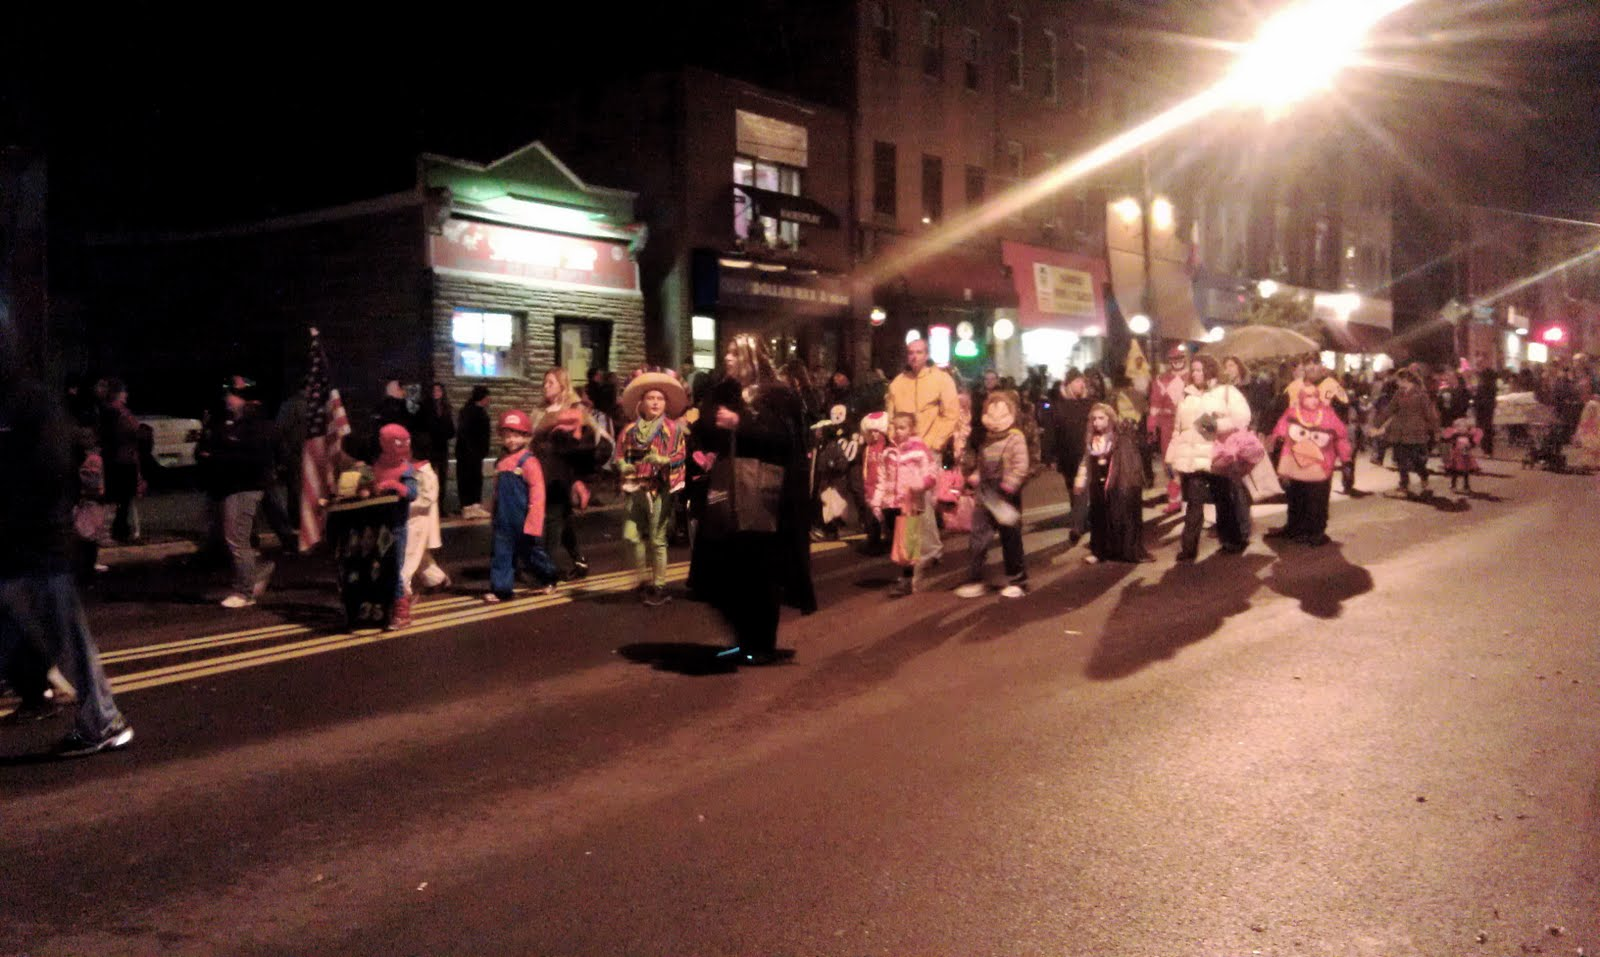 cheer on the phca and lungs face feet in the bloomfield halloween